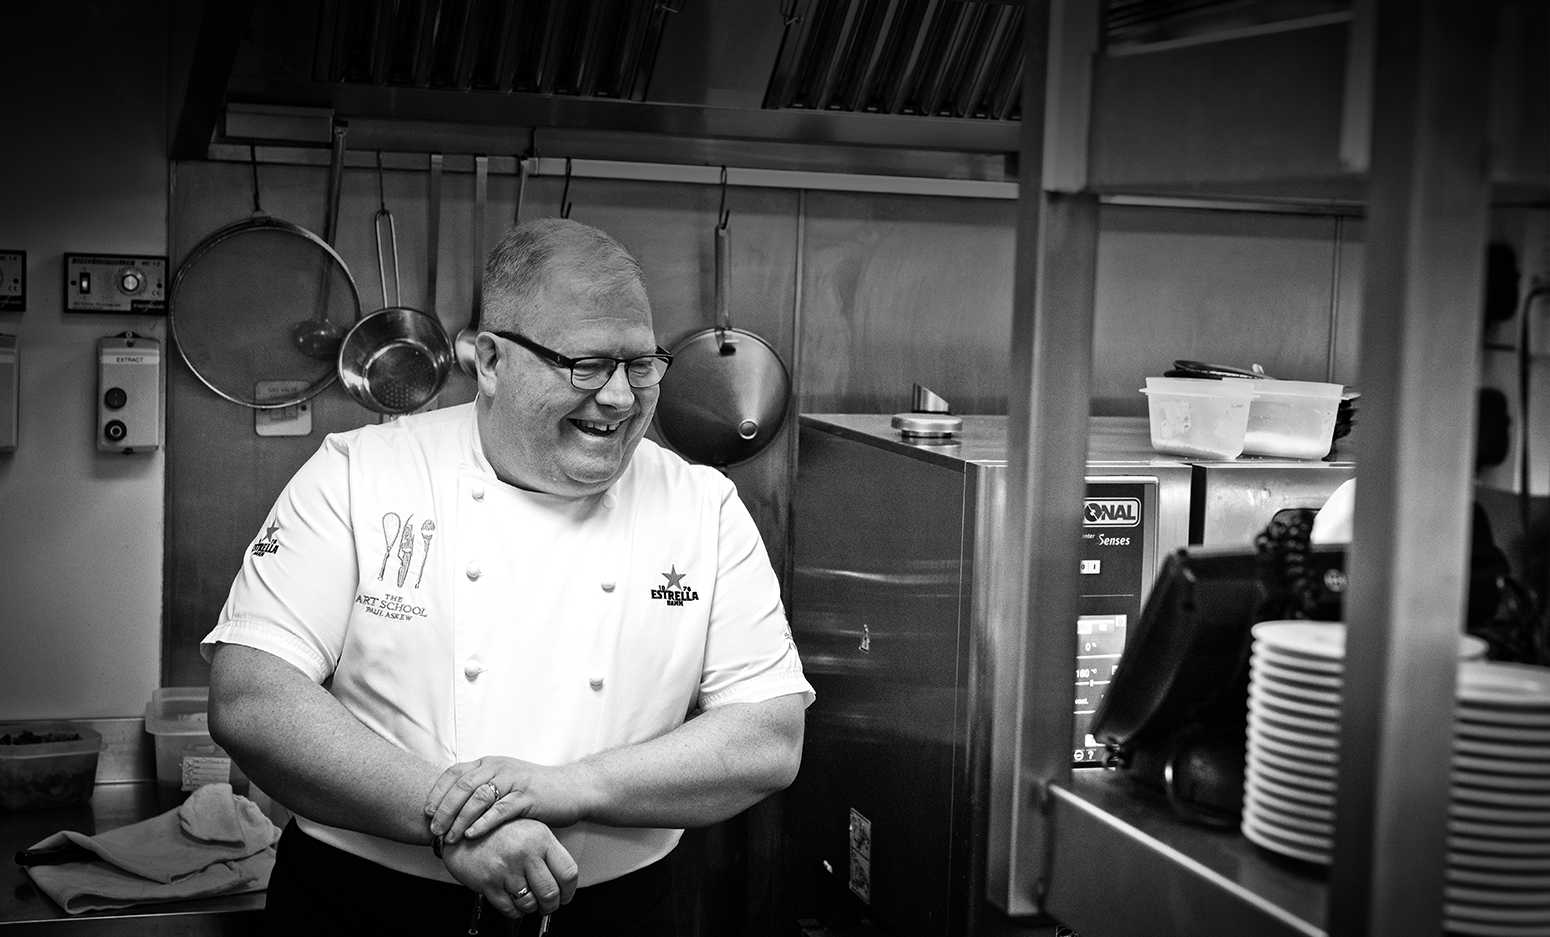 Chef Paul Askew Laughing in the kitchen at The Art School Restaurant About Us